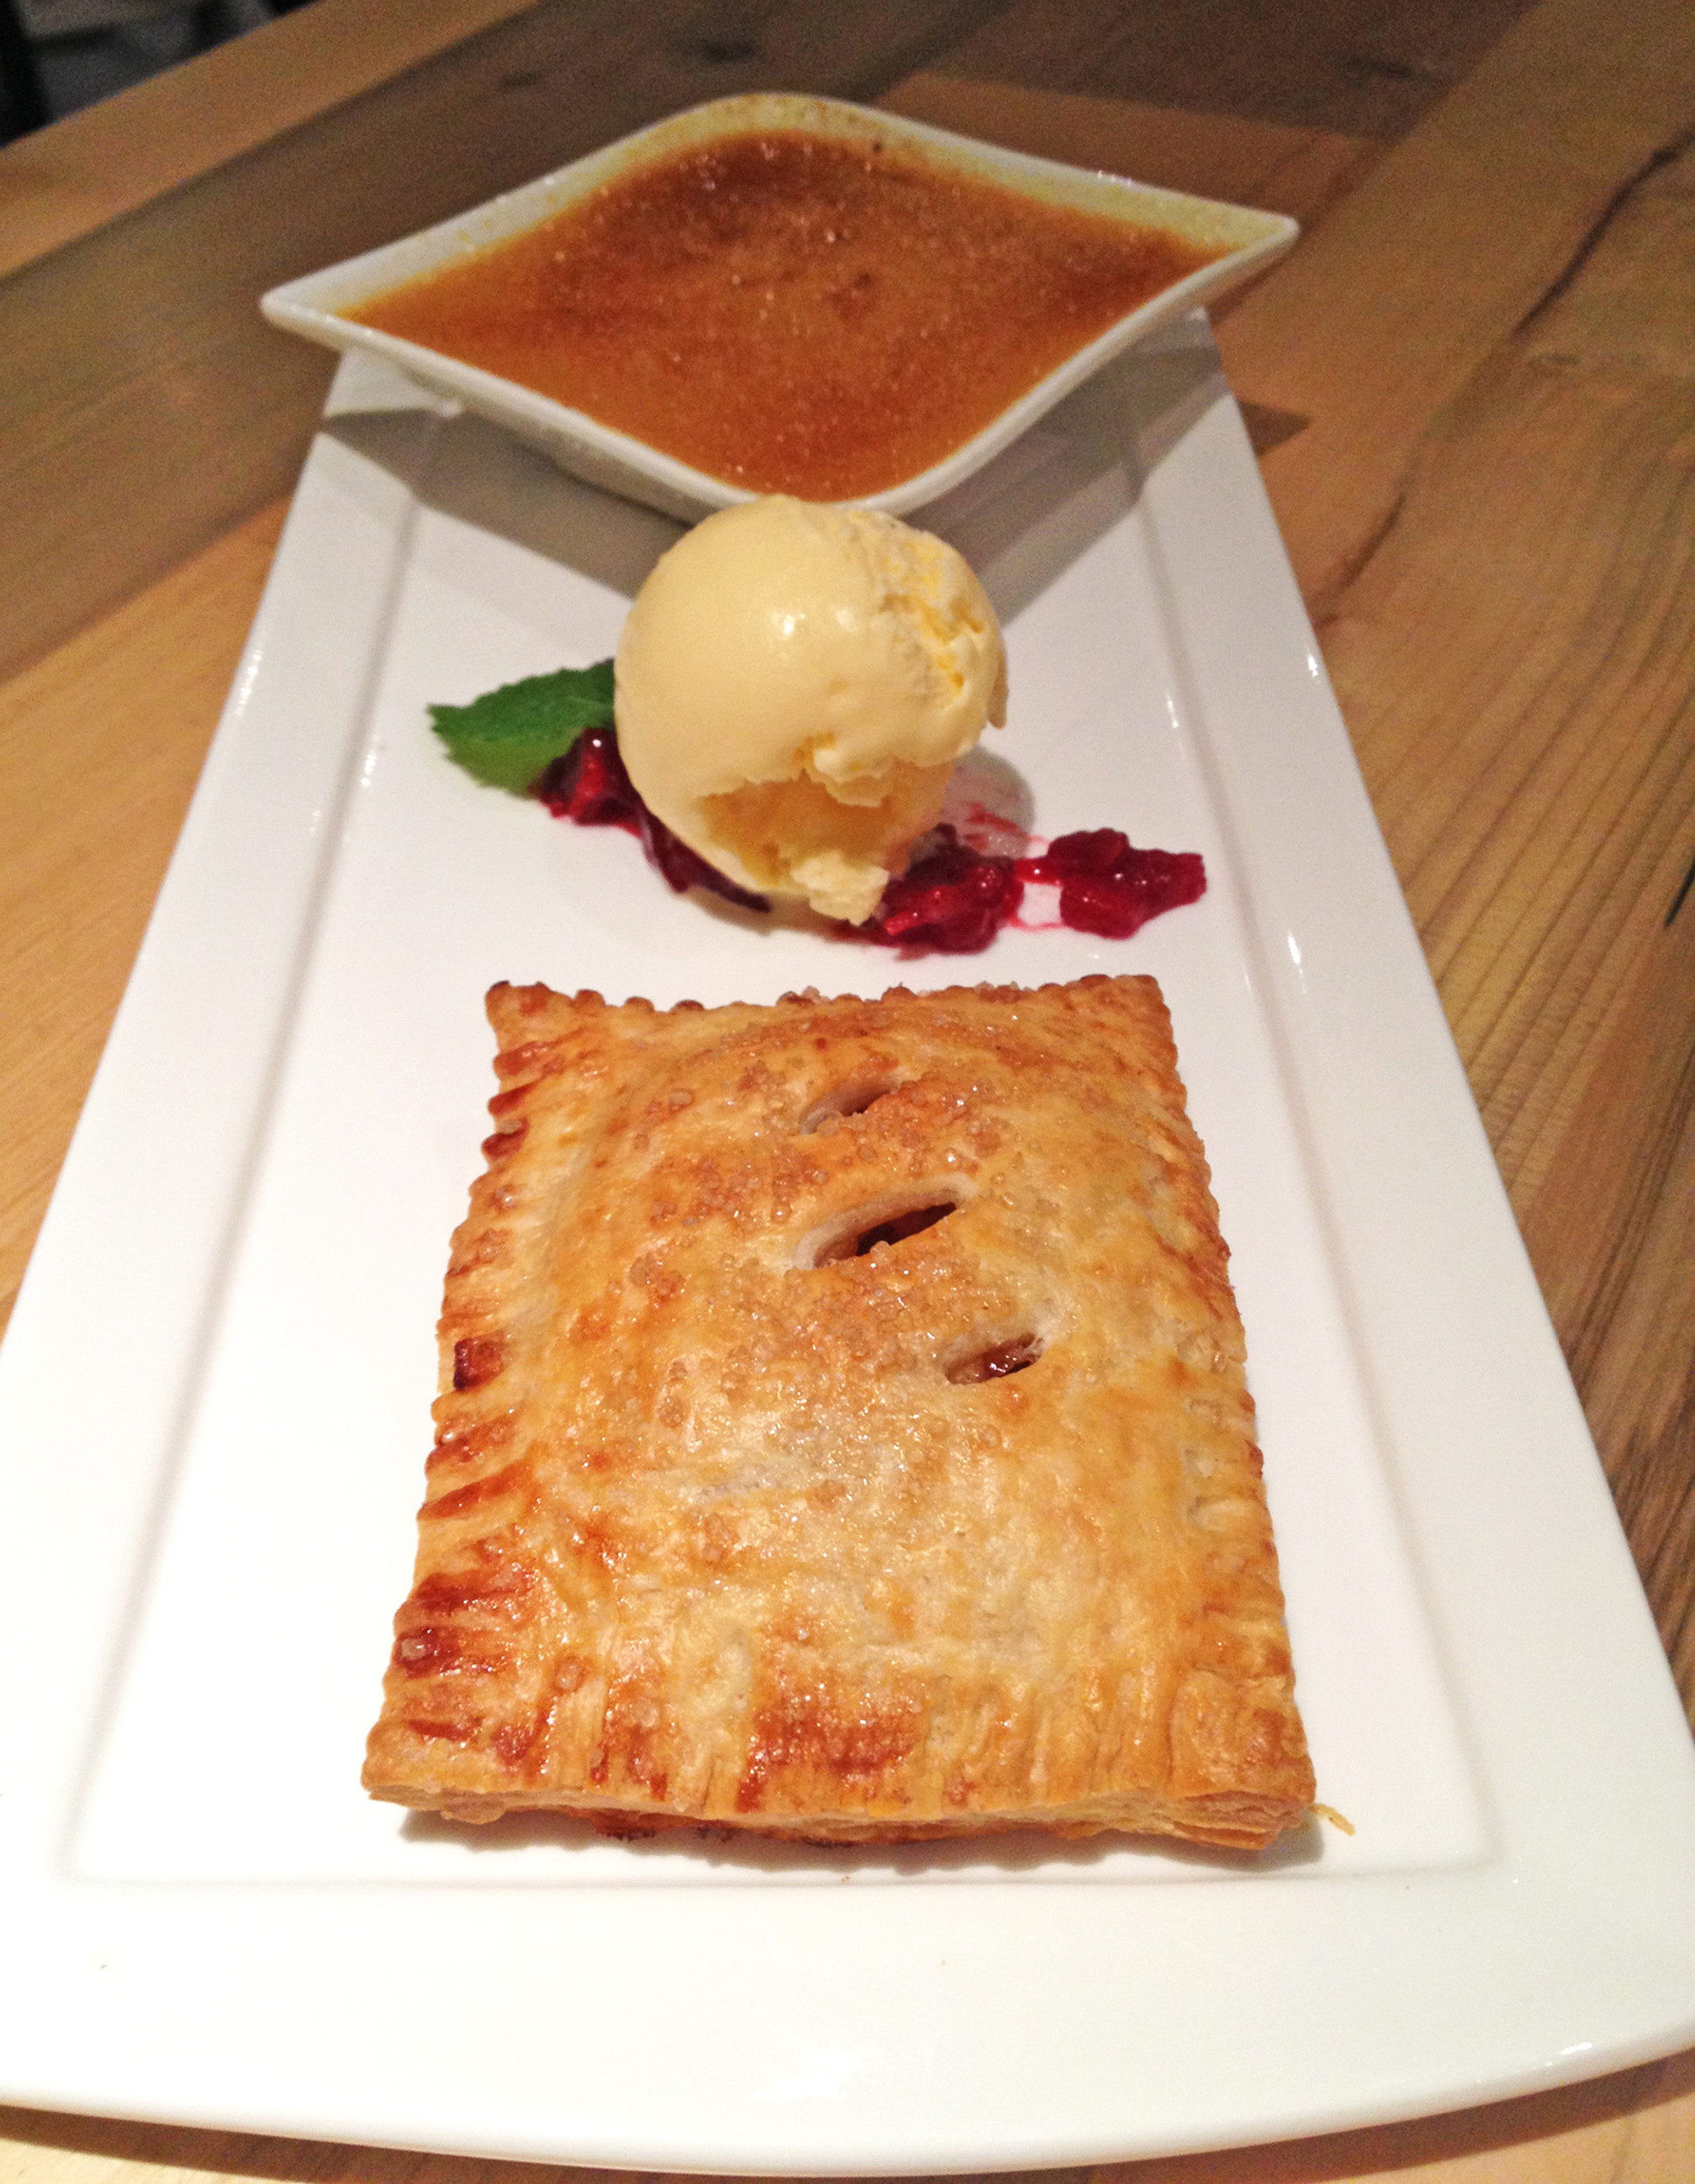 The apple hand pie accompanied by salted custard and a mound of French vanilla ice cream offers a fun twist on traditional apple pie.